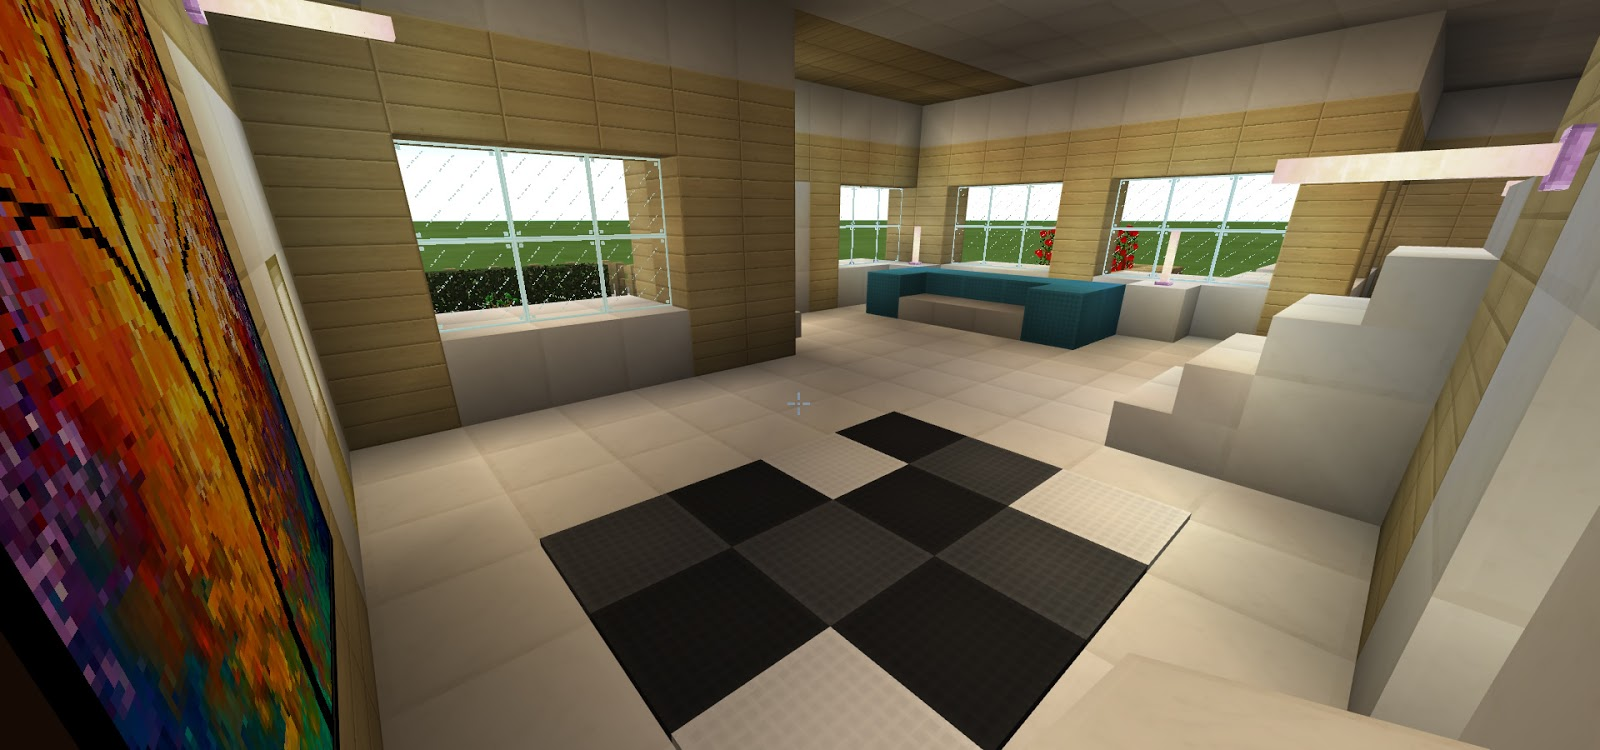 Amazing Minecraft Interior Decorating Ideas Cfm Fuelgaming